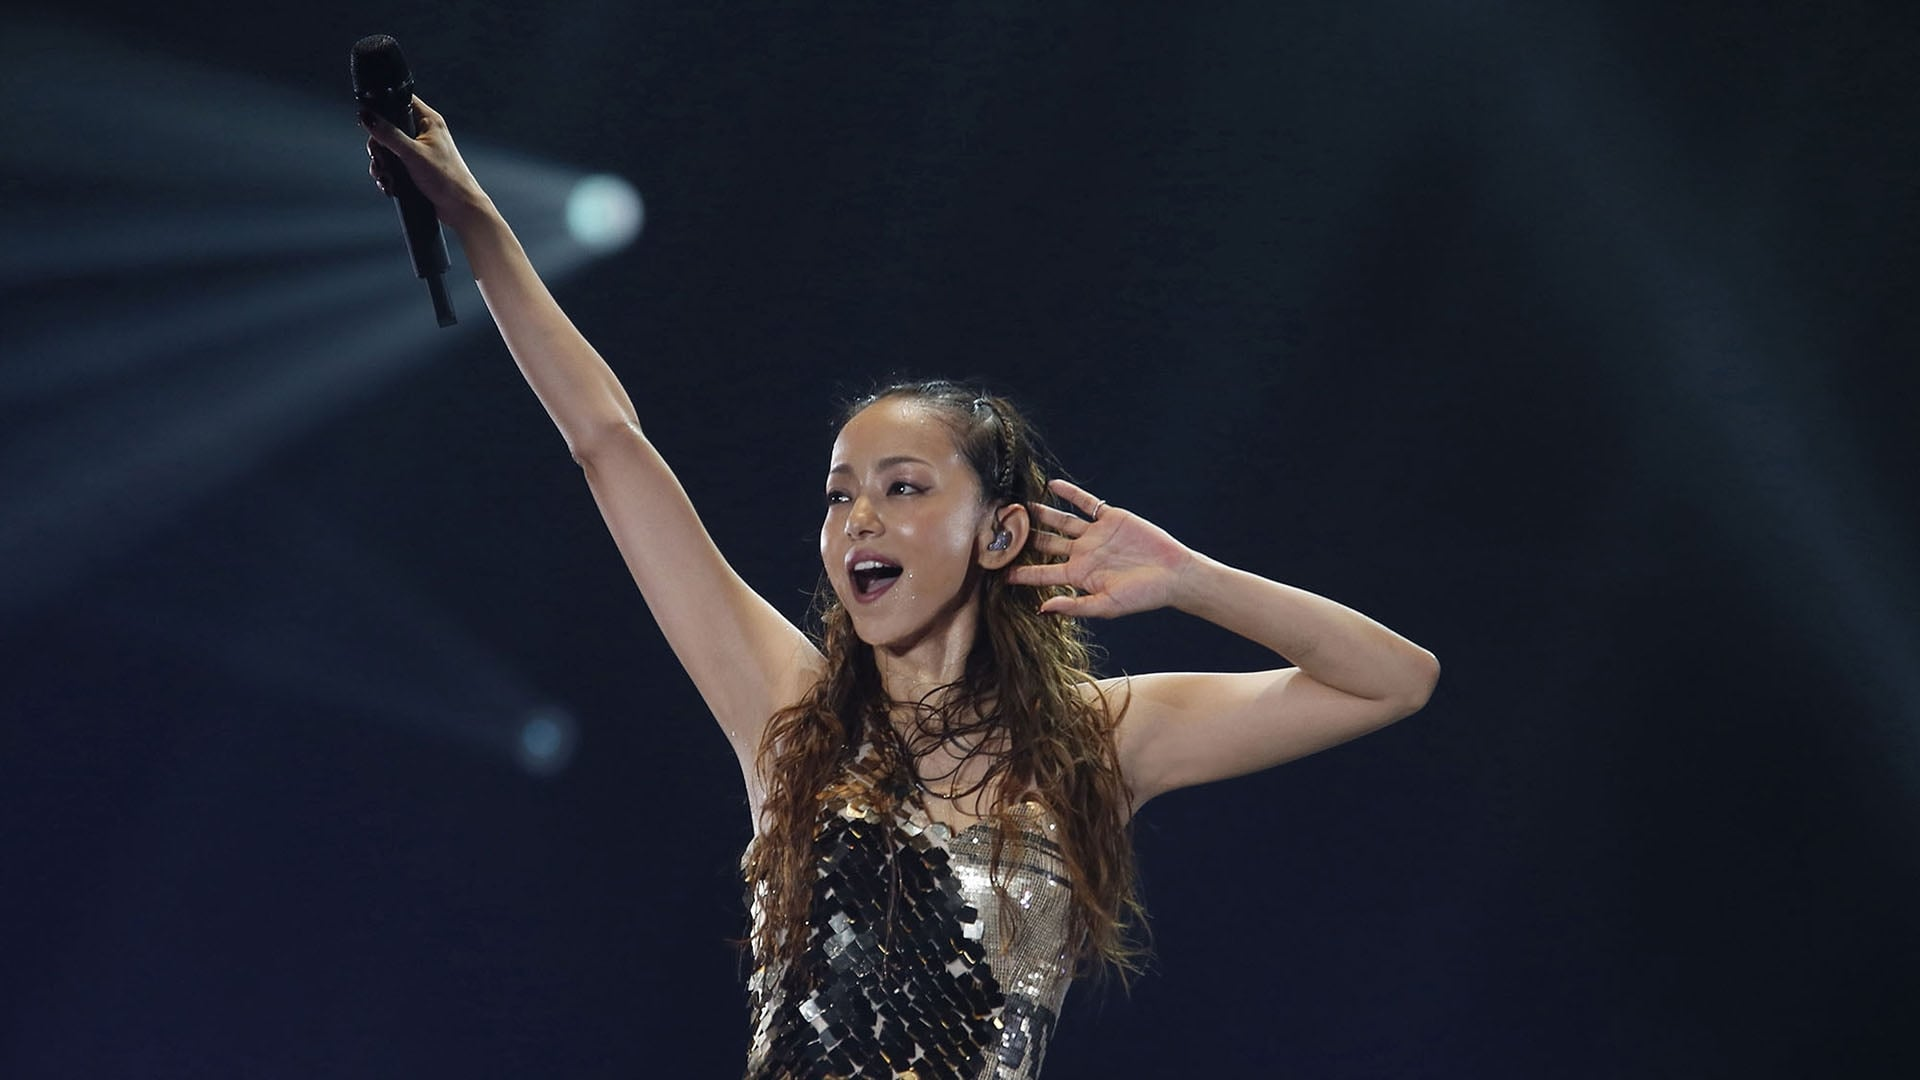 Best Namie Amuro wallpapers backgrounds